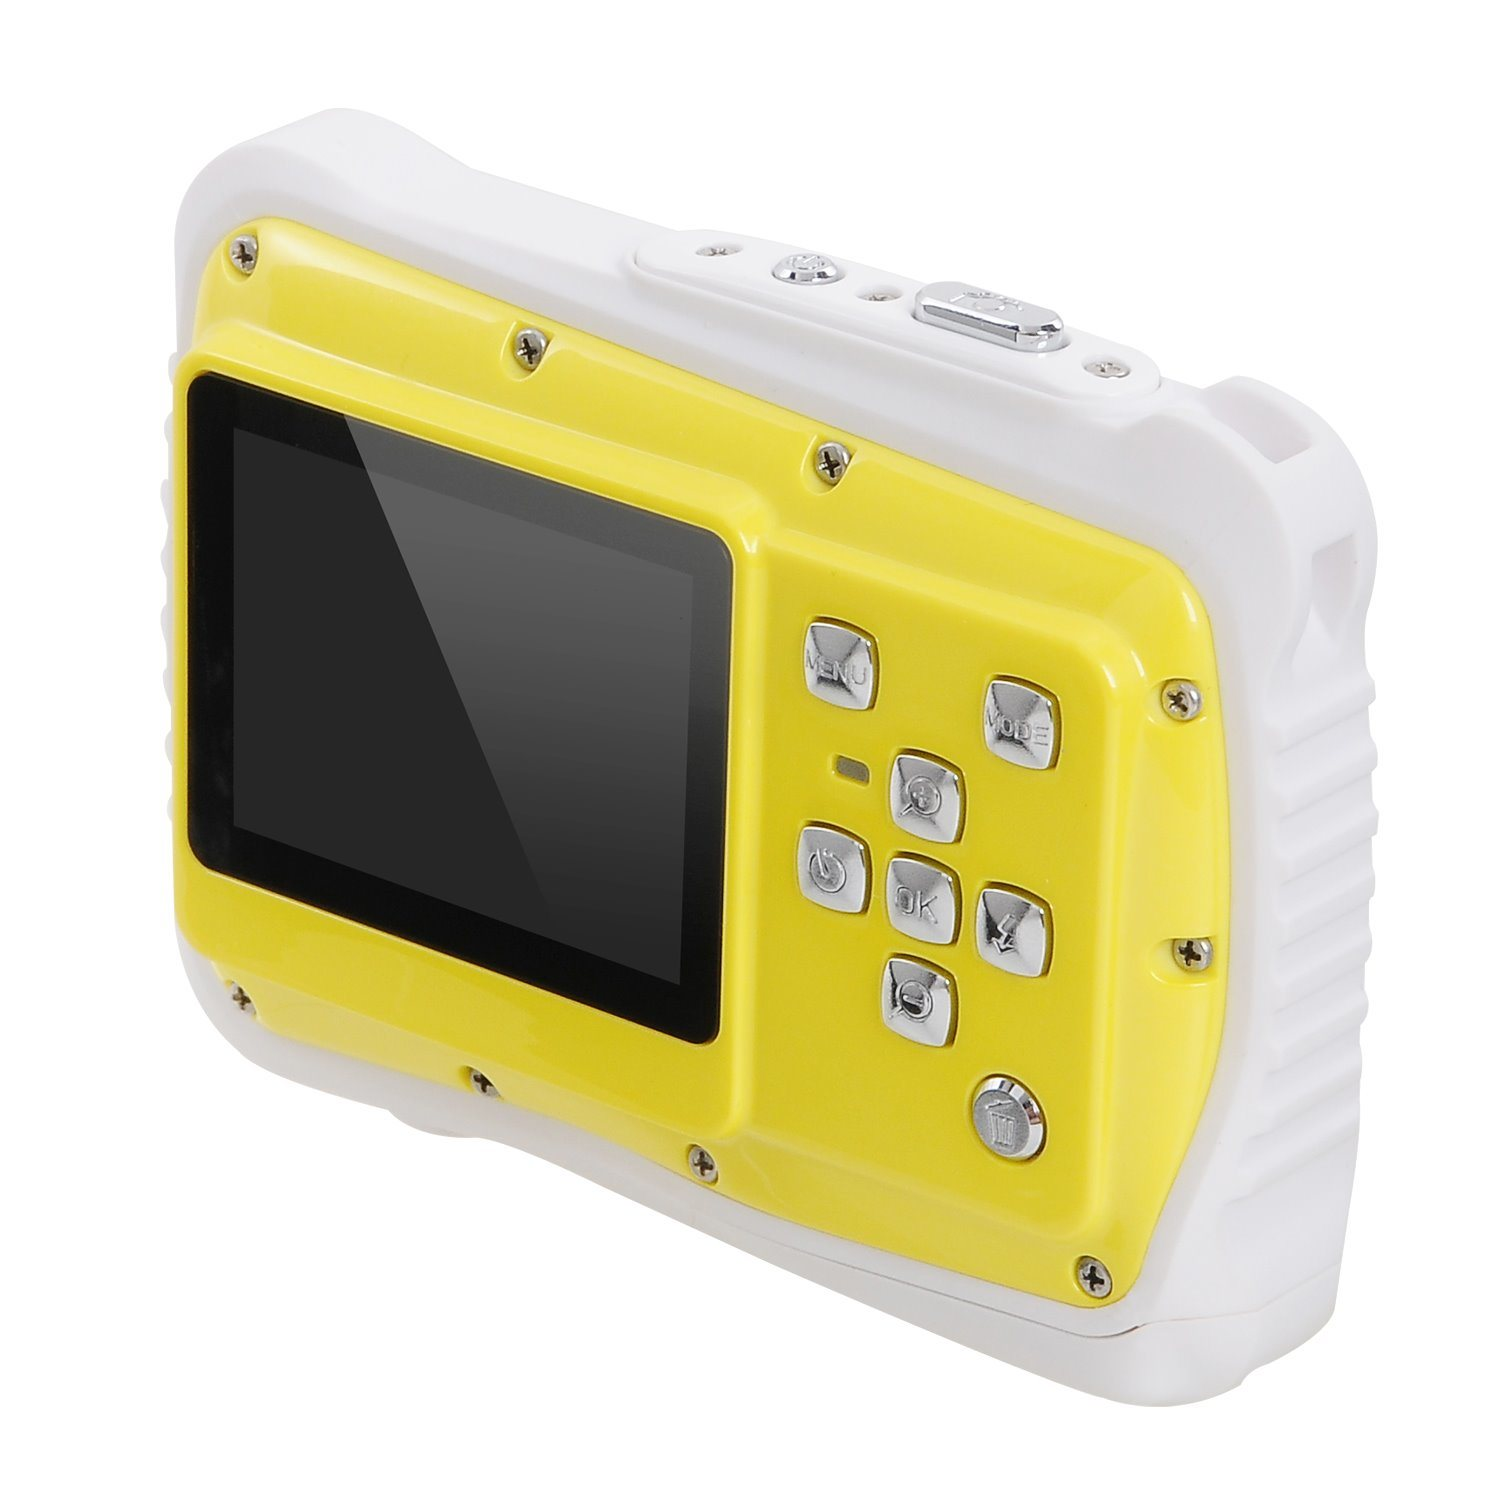 12MP 720p 3m Waterproof Mini Digital Camera